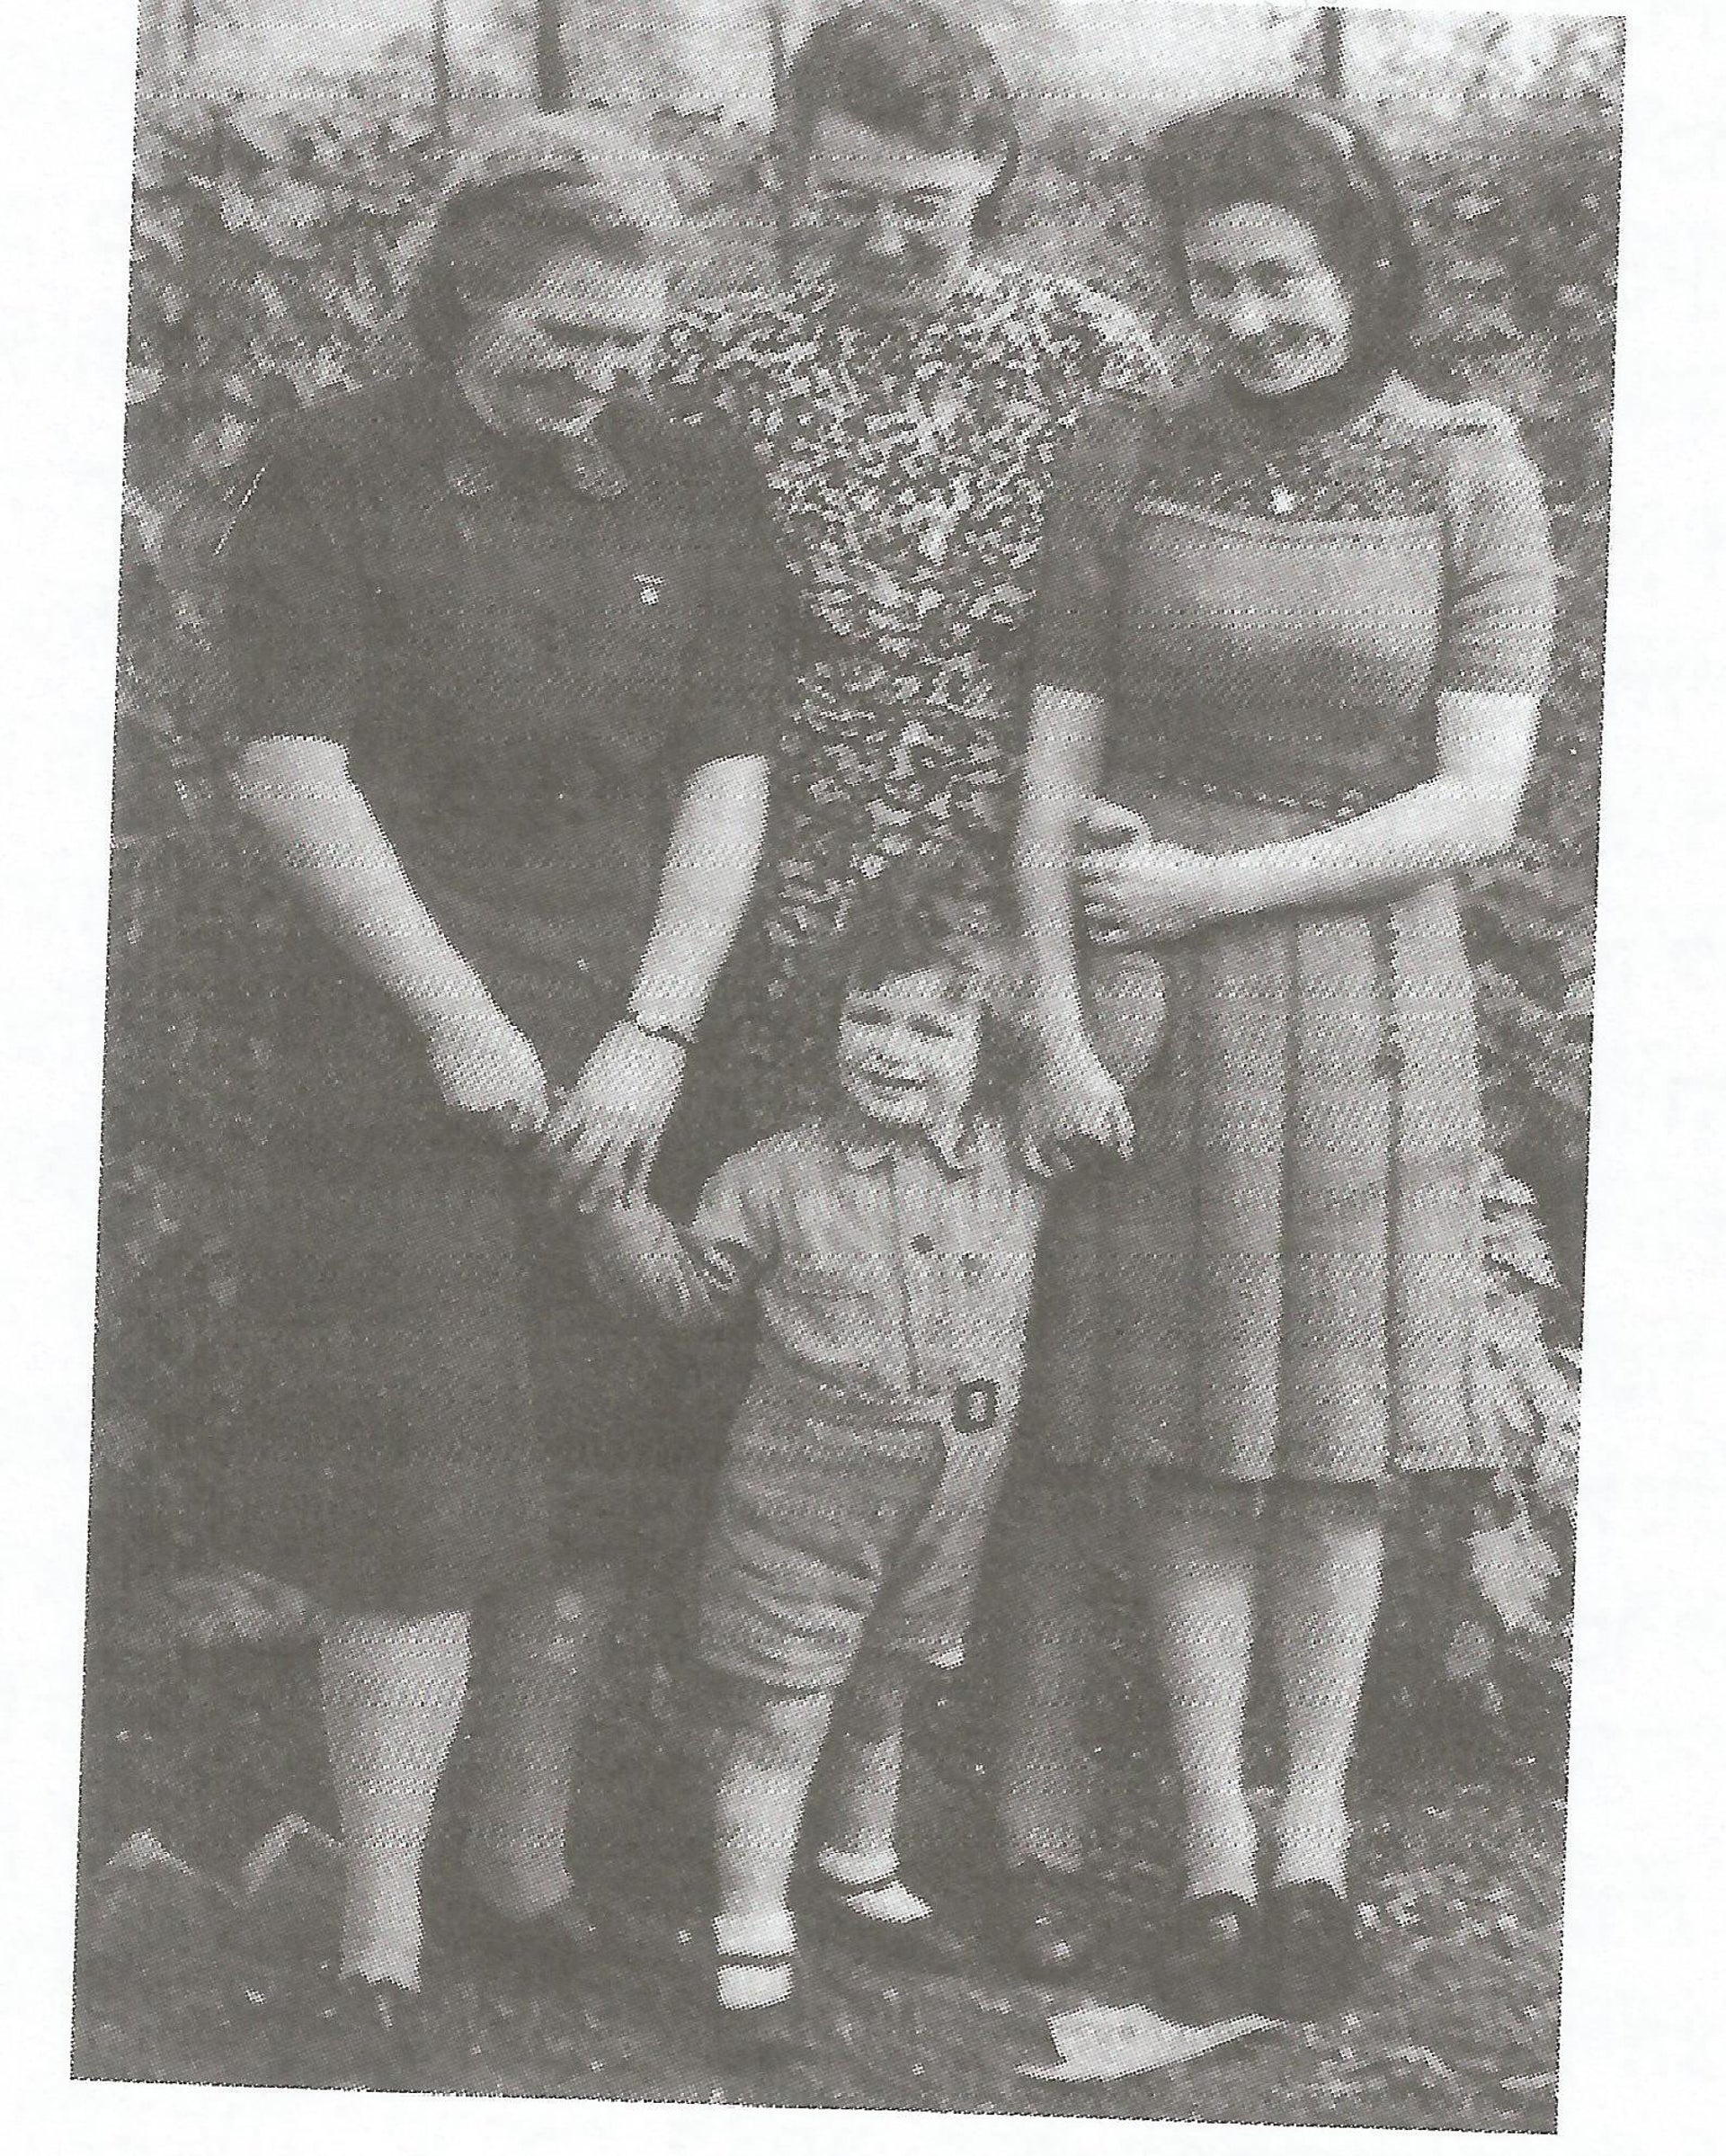 Kanes with his adopted mother (center) in 1944.